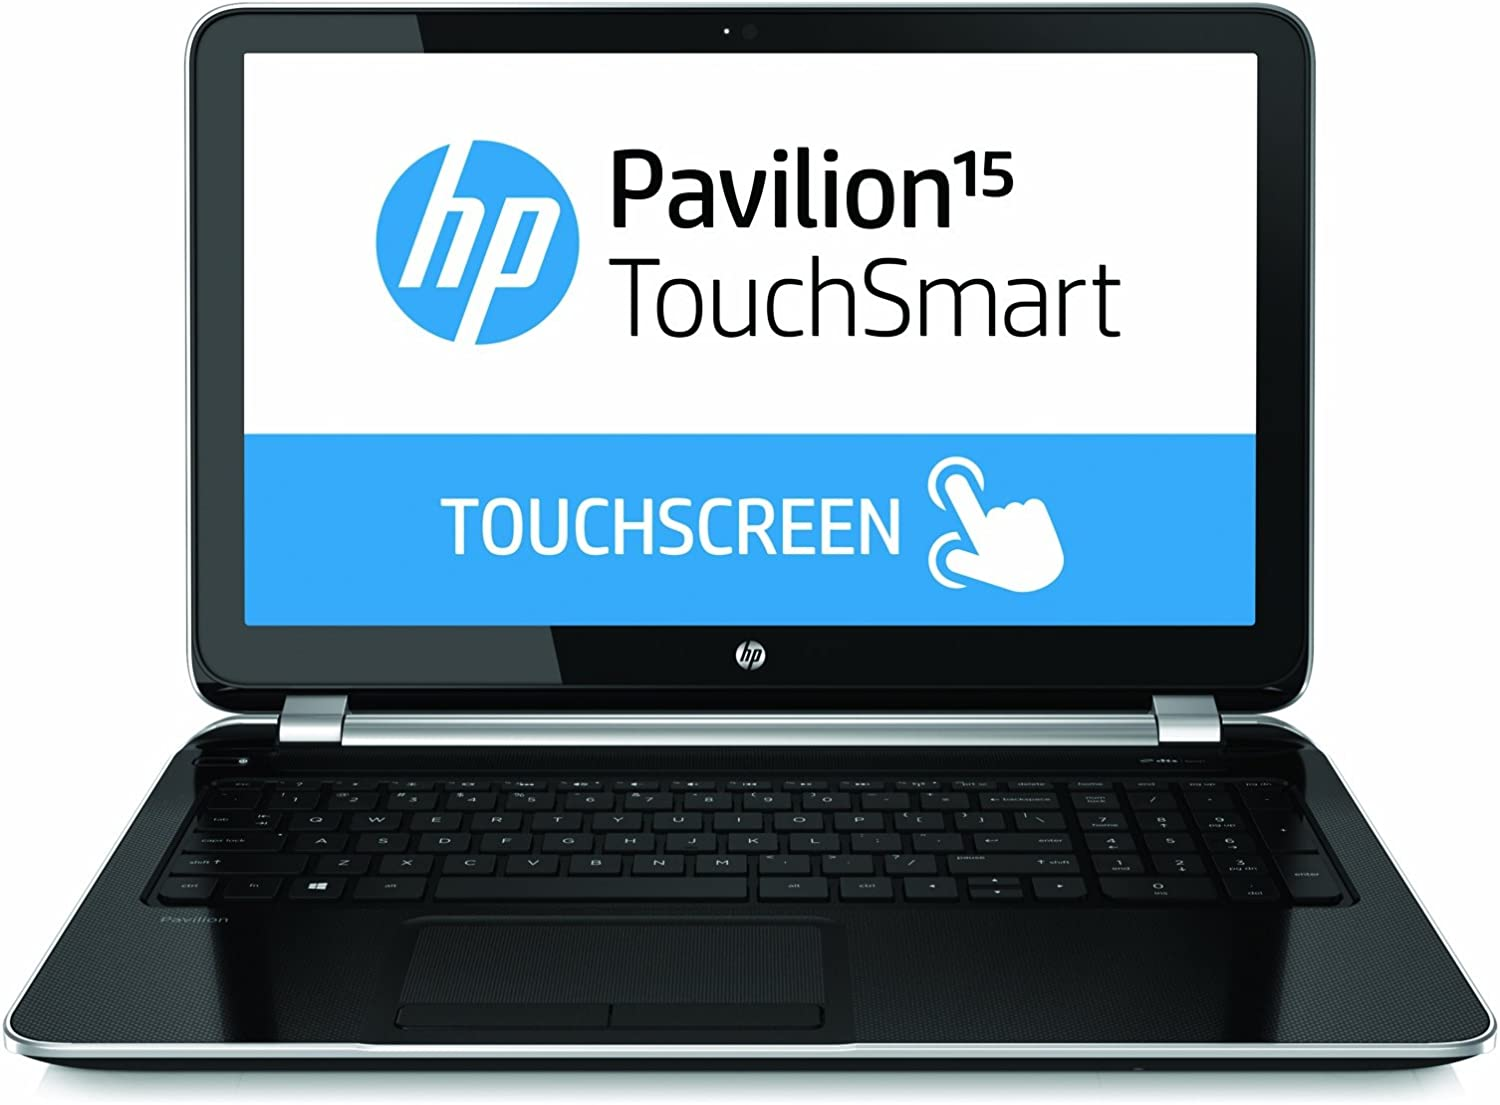 HP Pavilion TouchSmart 15-n020us 15.6-Inch Touchscreen Laptop (2 GHz AMD Quad-Core A6-5200 Processor, 4GB DDR3L, 750GB HDD, Windows 8) Black/Silver